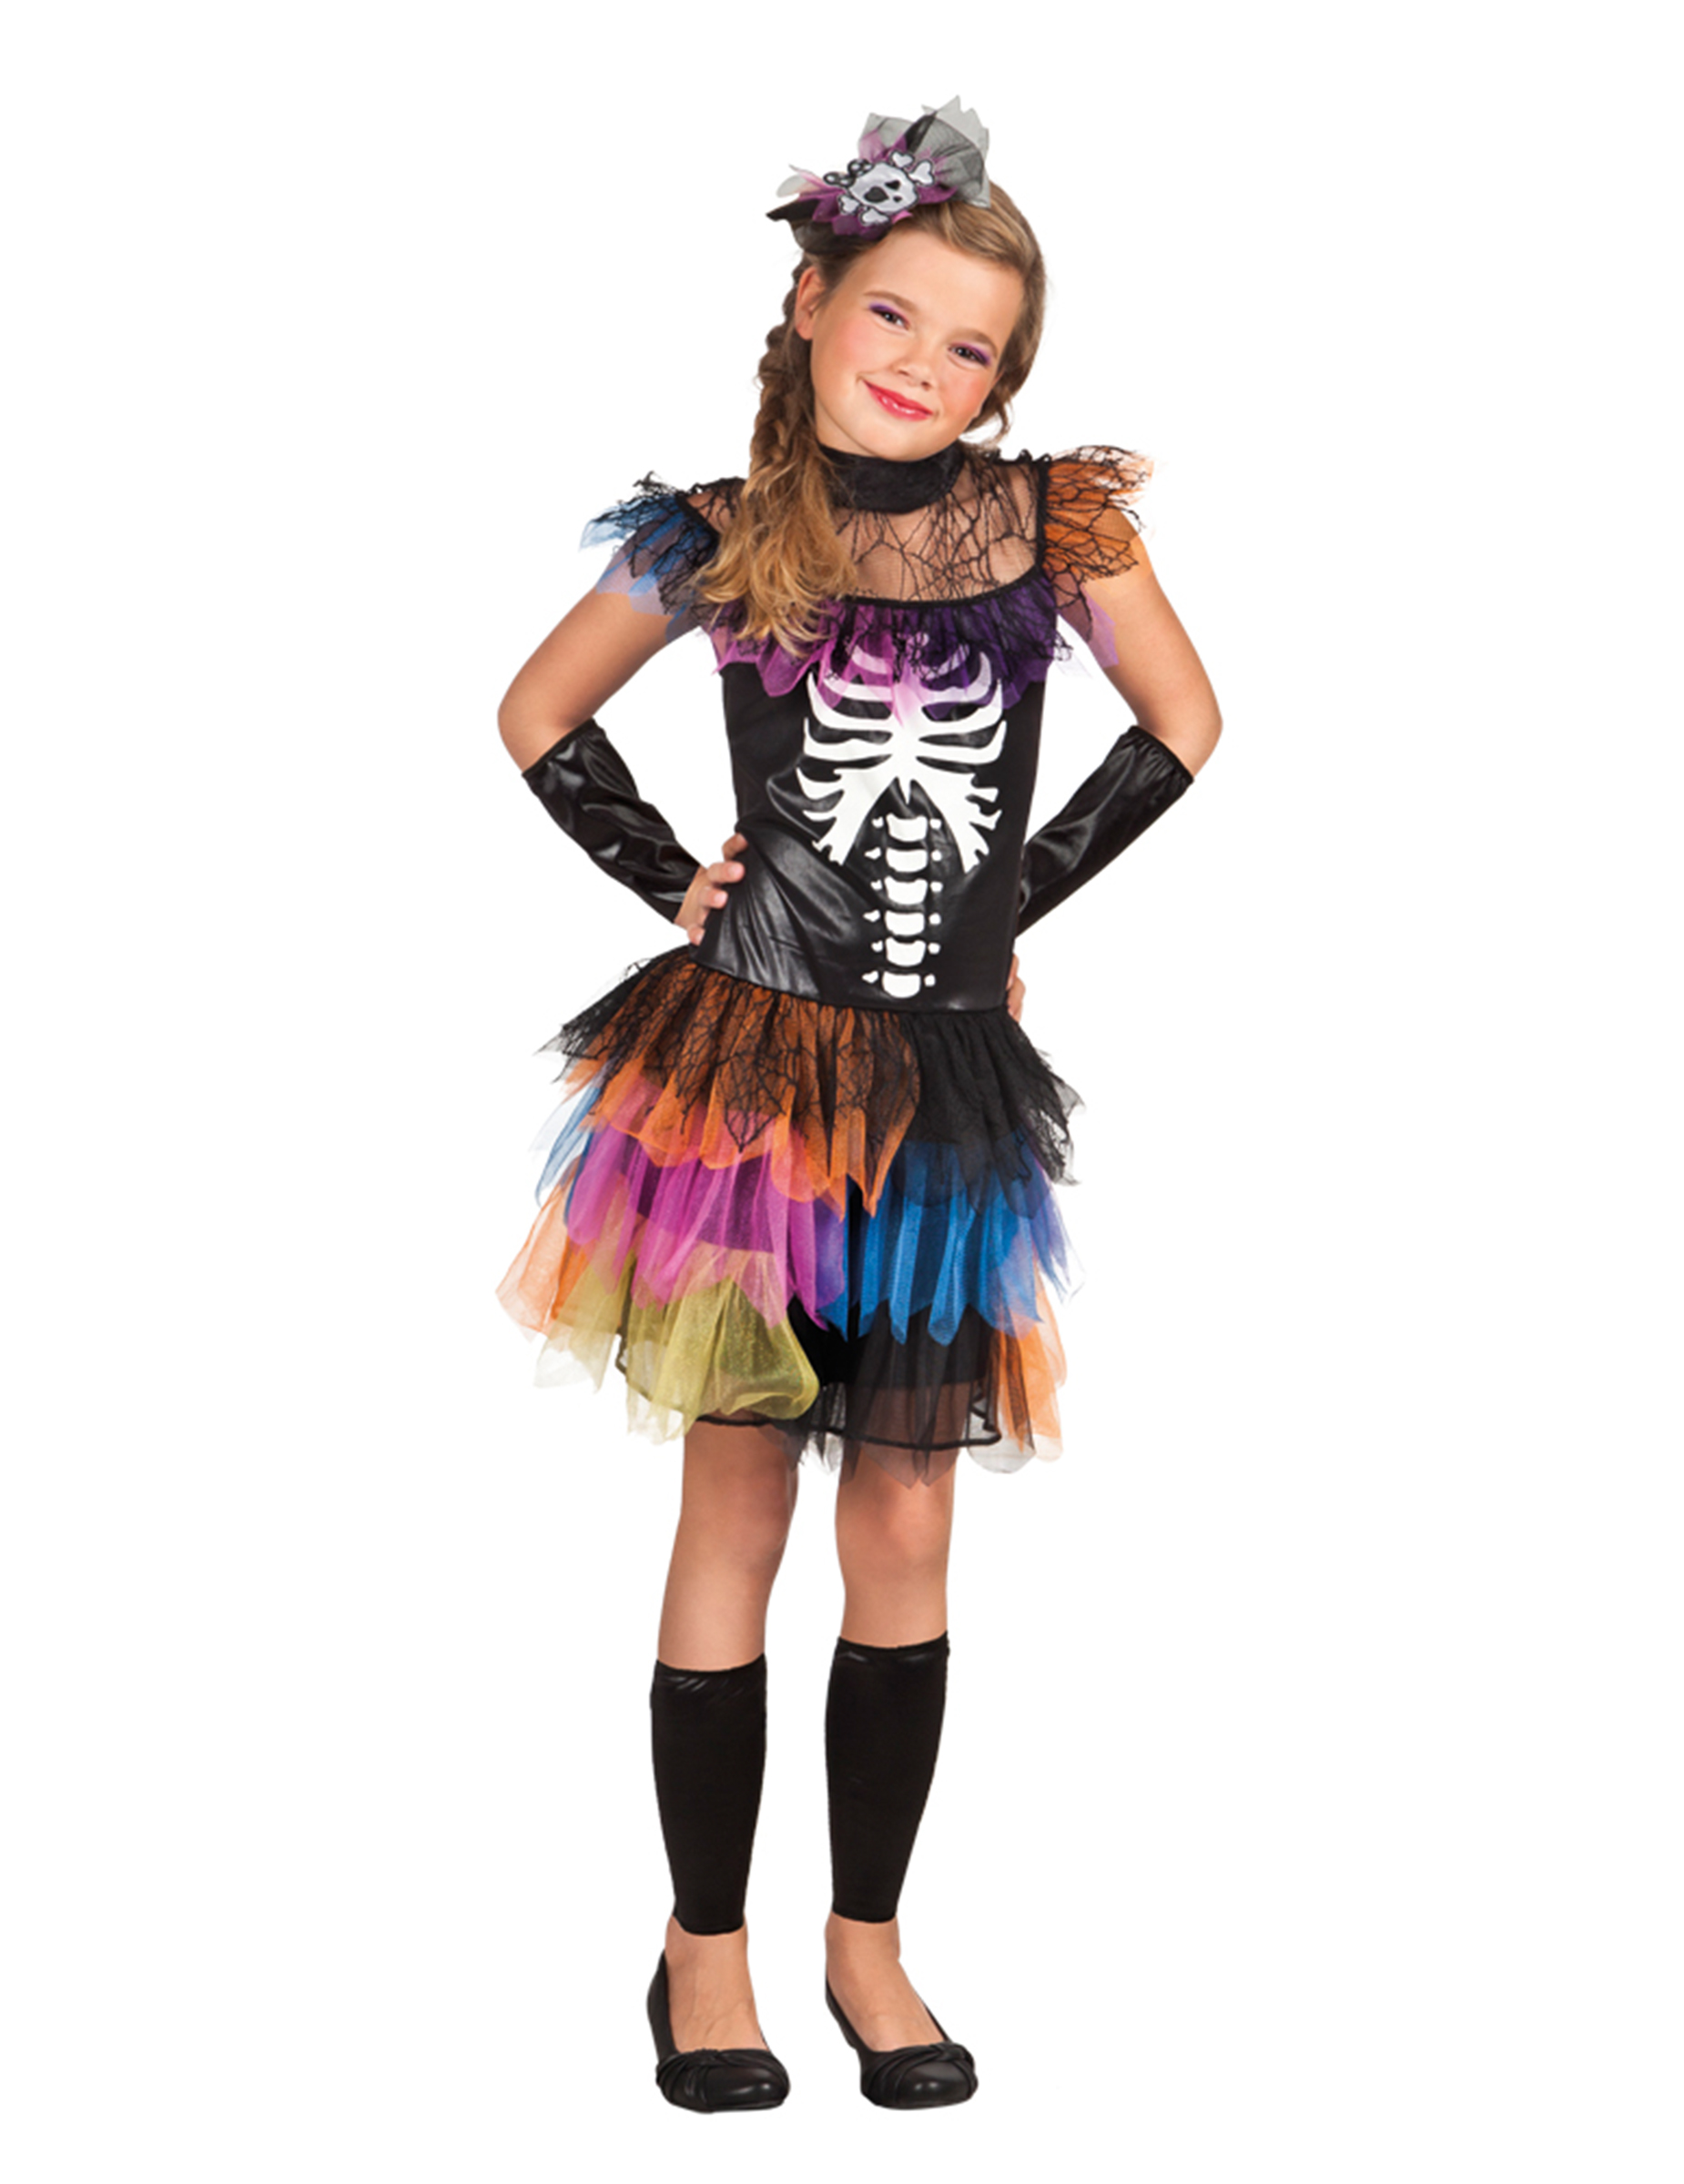 d guisement squelette tutu color fille halloween deguise toi achat de d guisements enfants. Black Bedroom Furniture Sets. Home Design Ideas